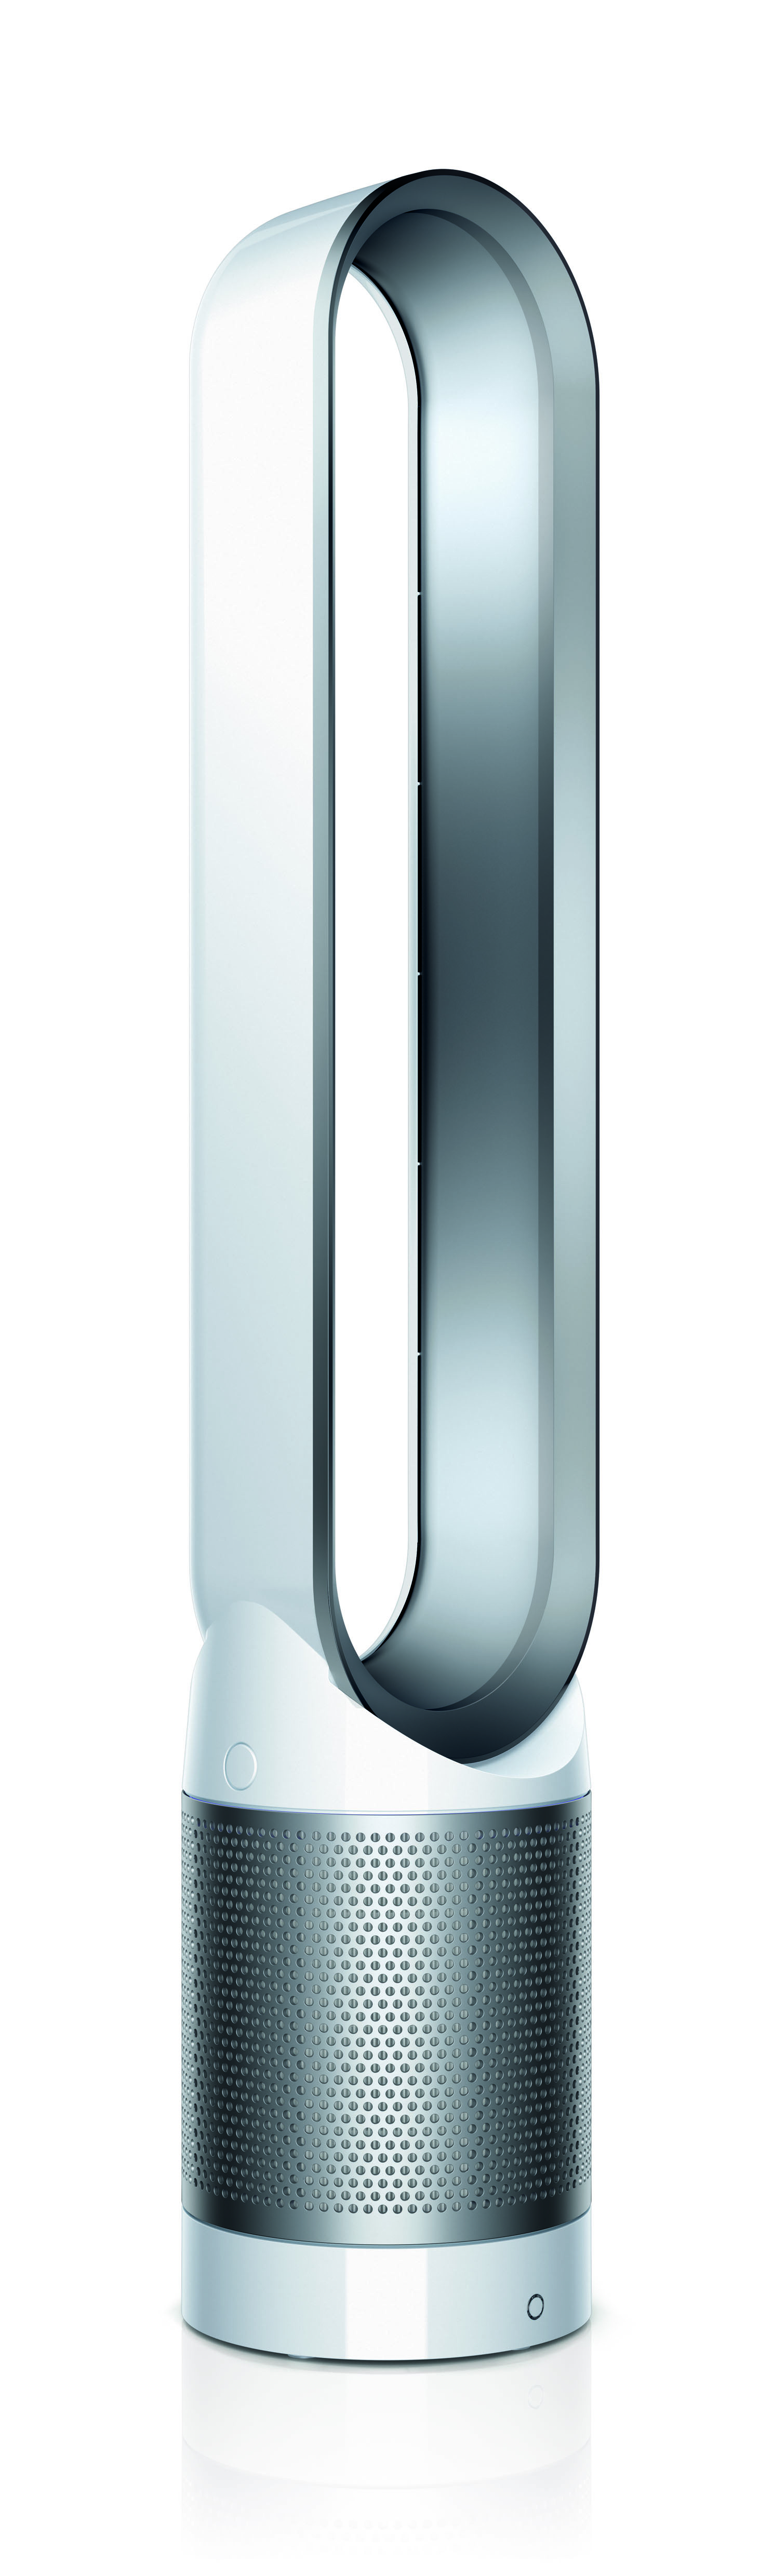 Dyson-AM11-Pure-Cool-Tower-Purifier-amp-Fan thumbnail 15